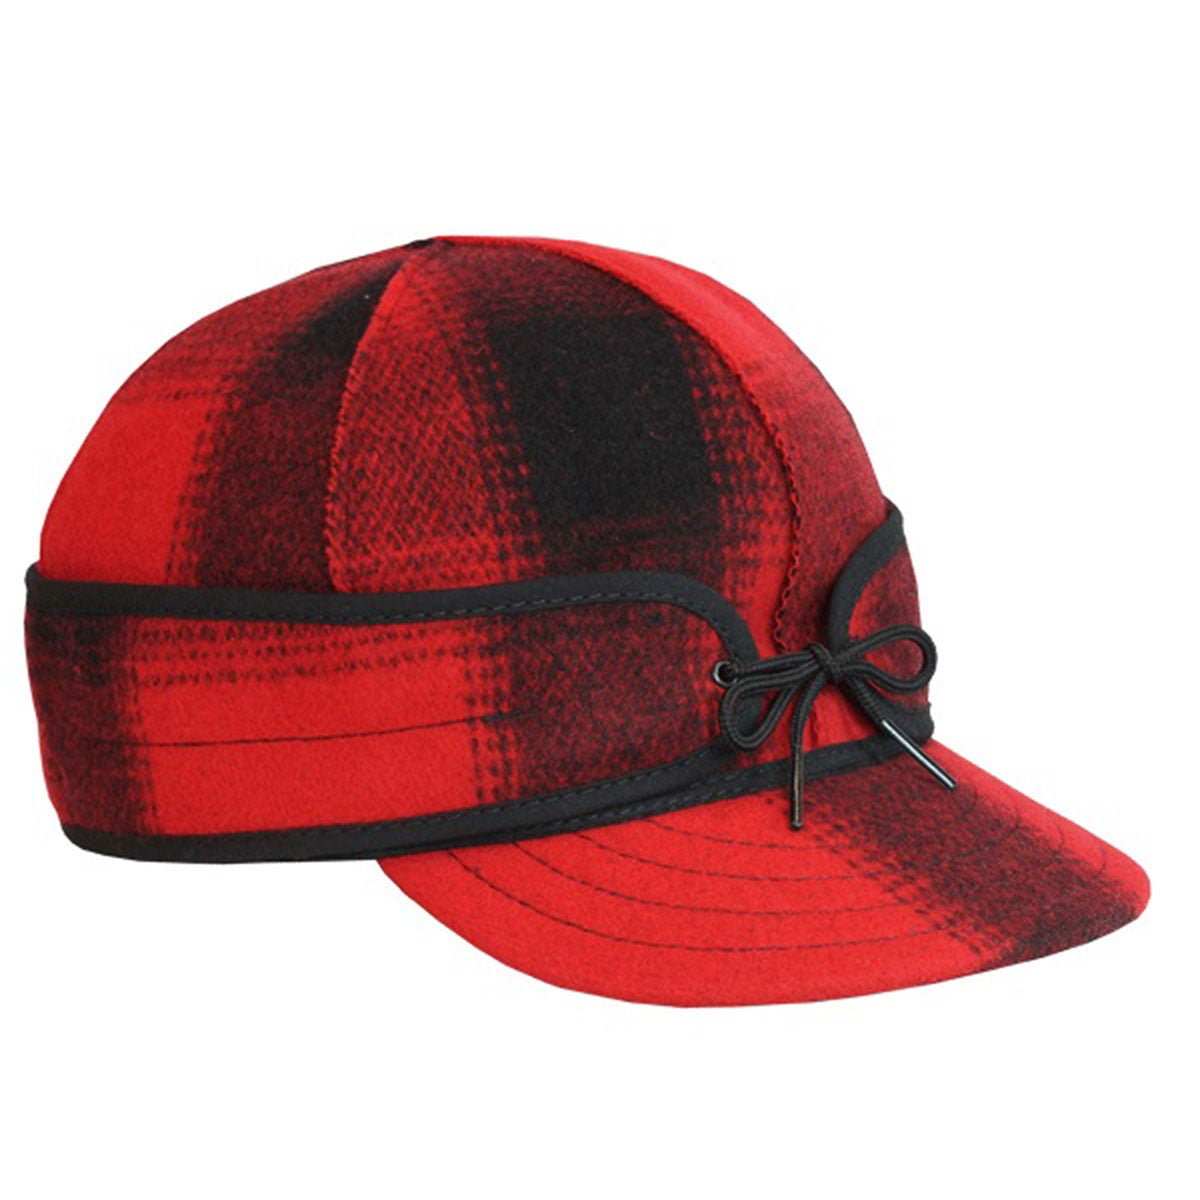 Men's Vintage Workwear – 1920s, 1930s, 1940s, 1950s Mackinaw Cap $49.99 AT vintagedancer.com